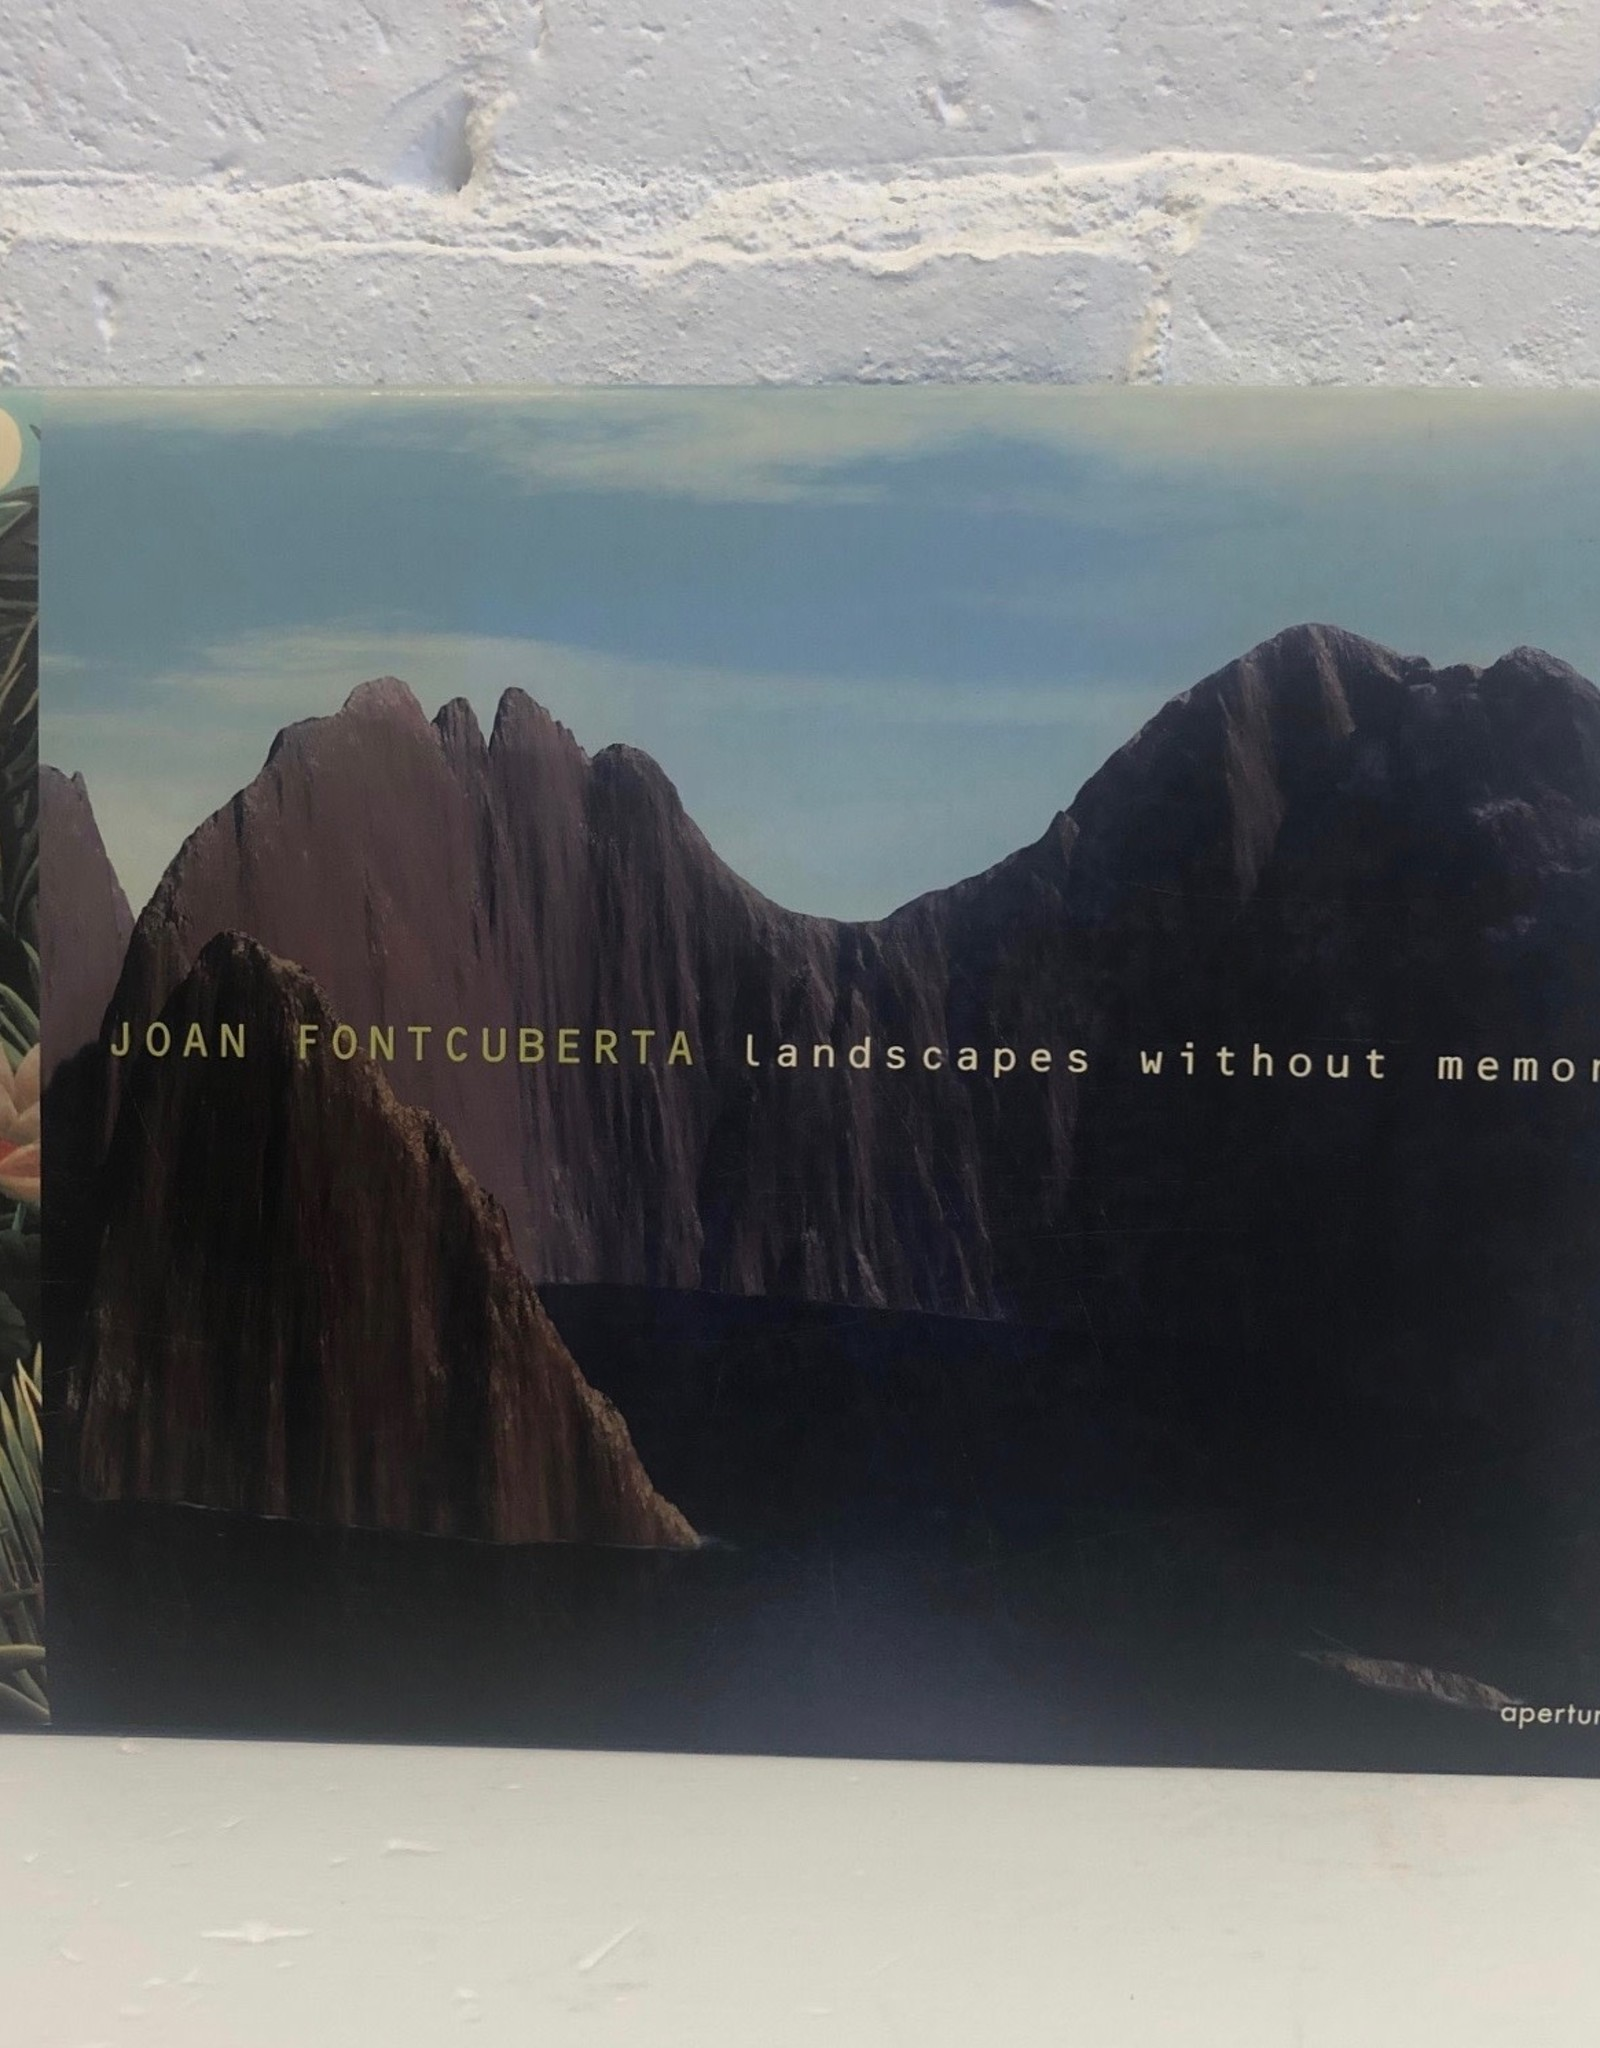 Landscape without Memory by Joan Fontcuberta